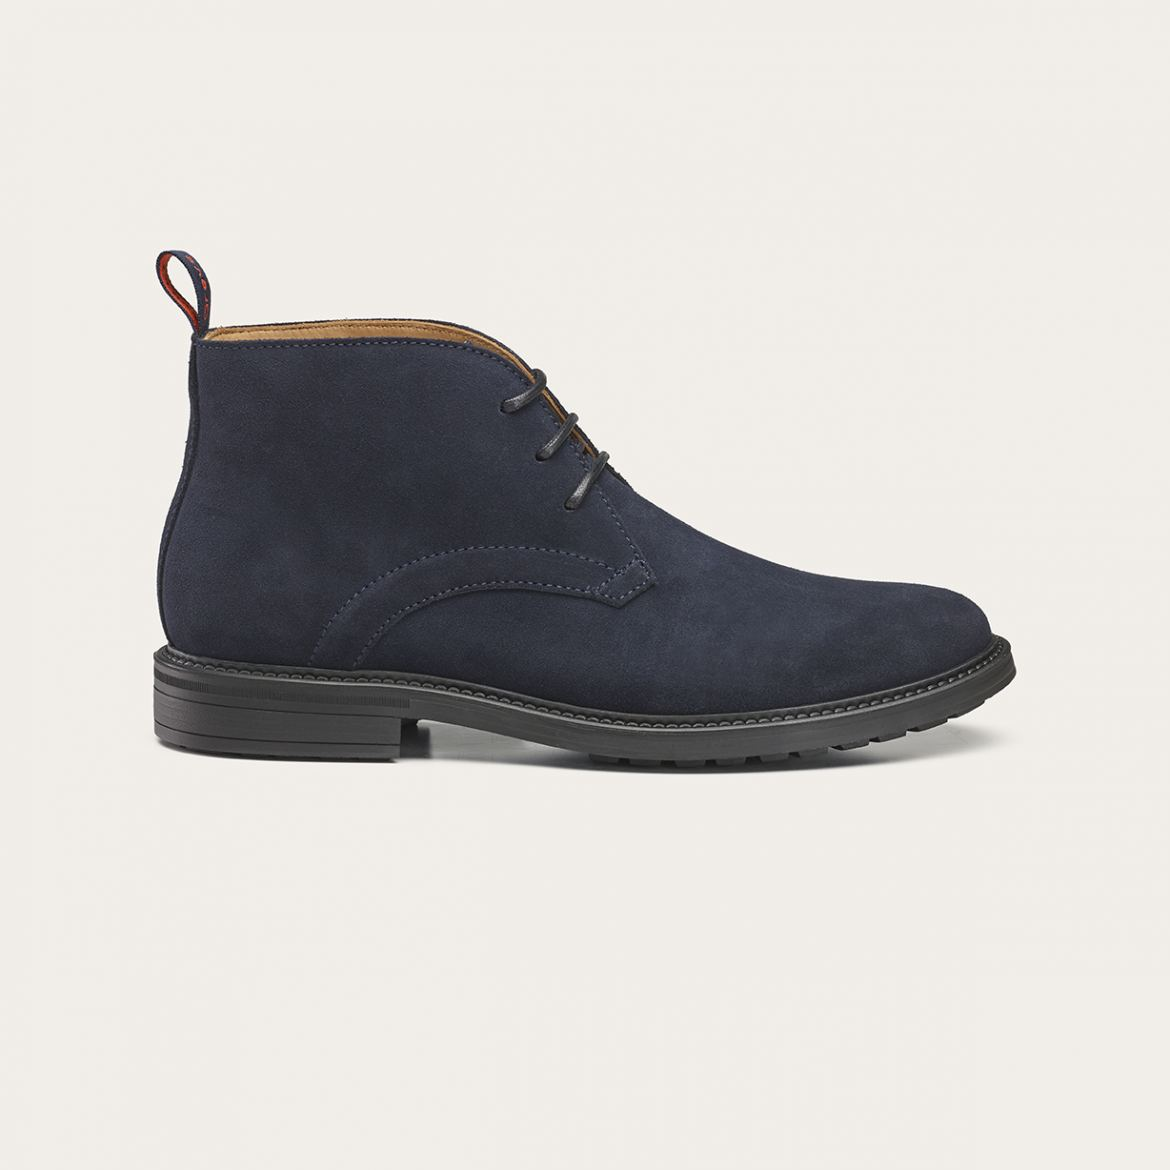 Greve Veterboot Barbour Night Blue Velvet  5565.03